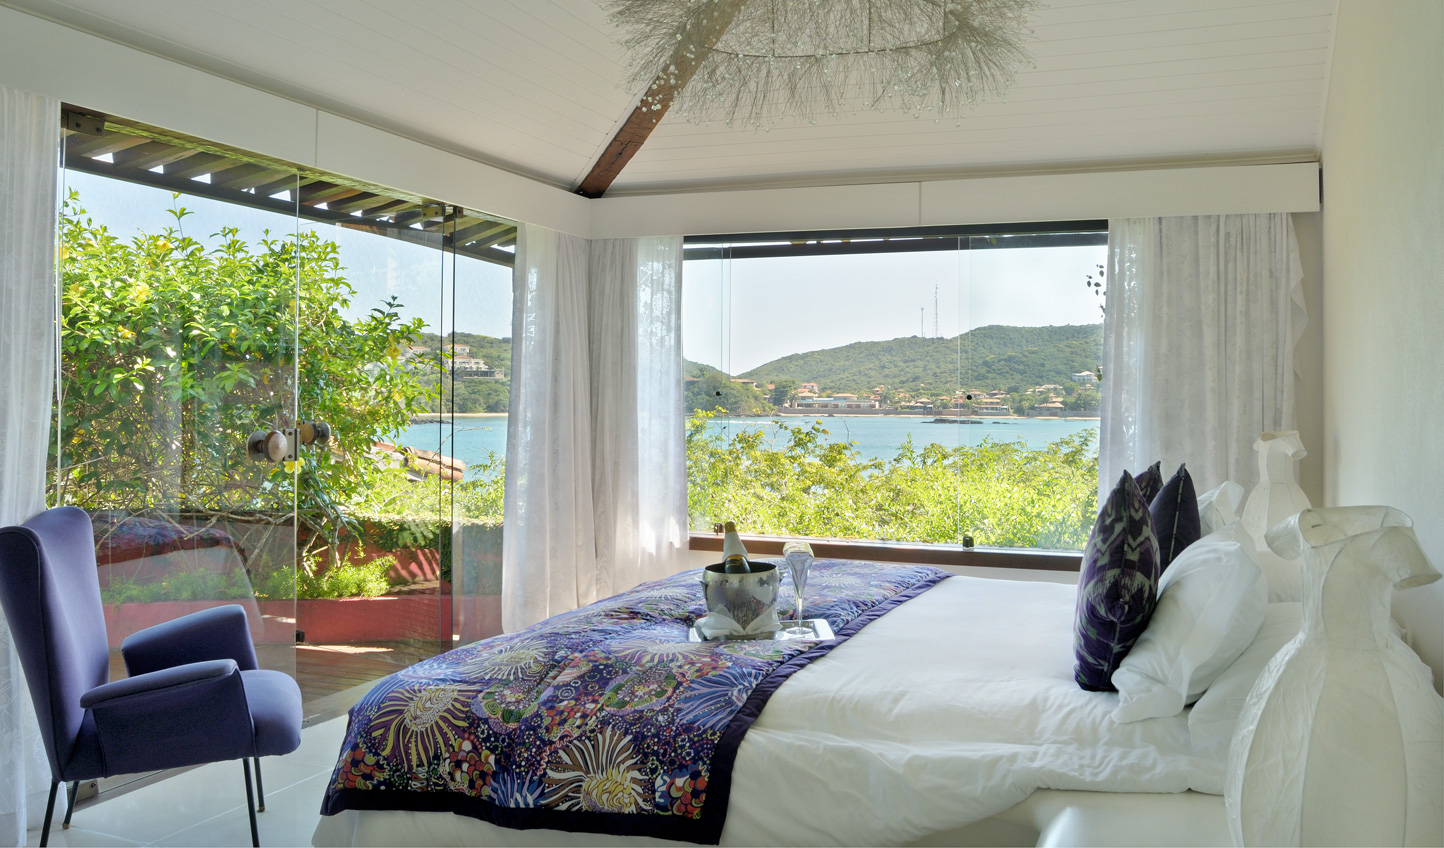 Soak in the views from wraparound glass windows